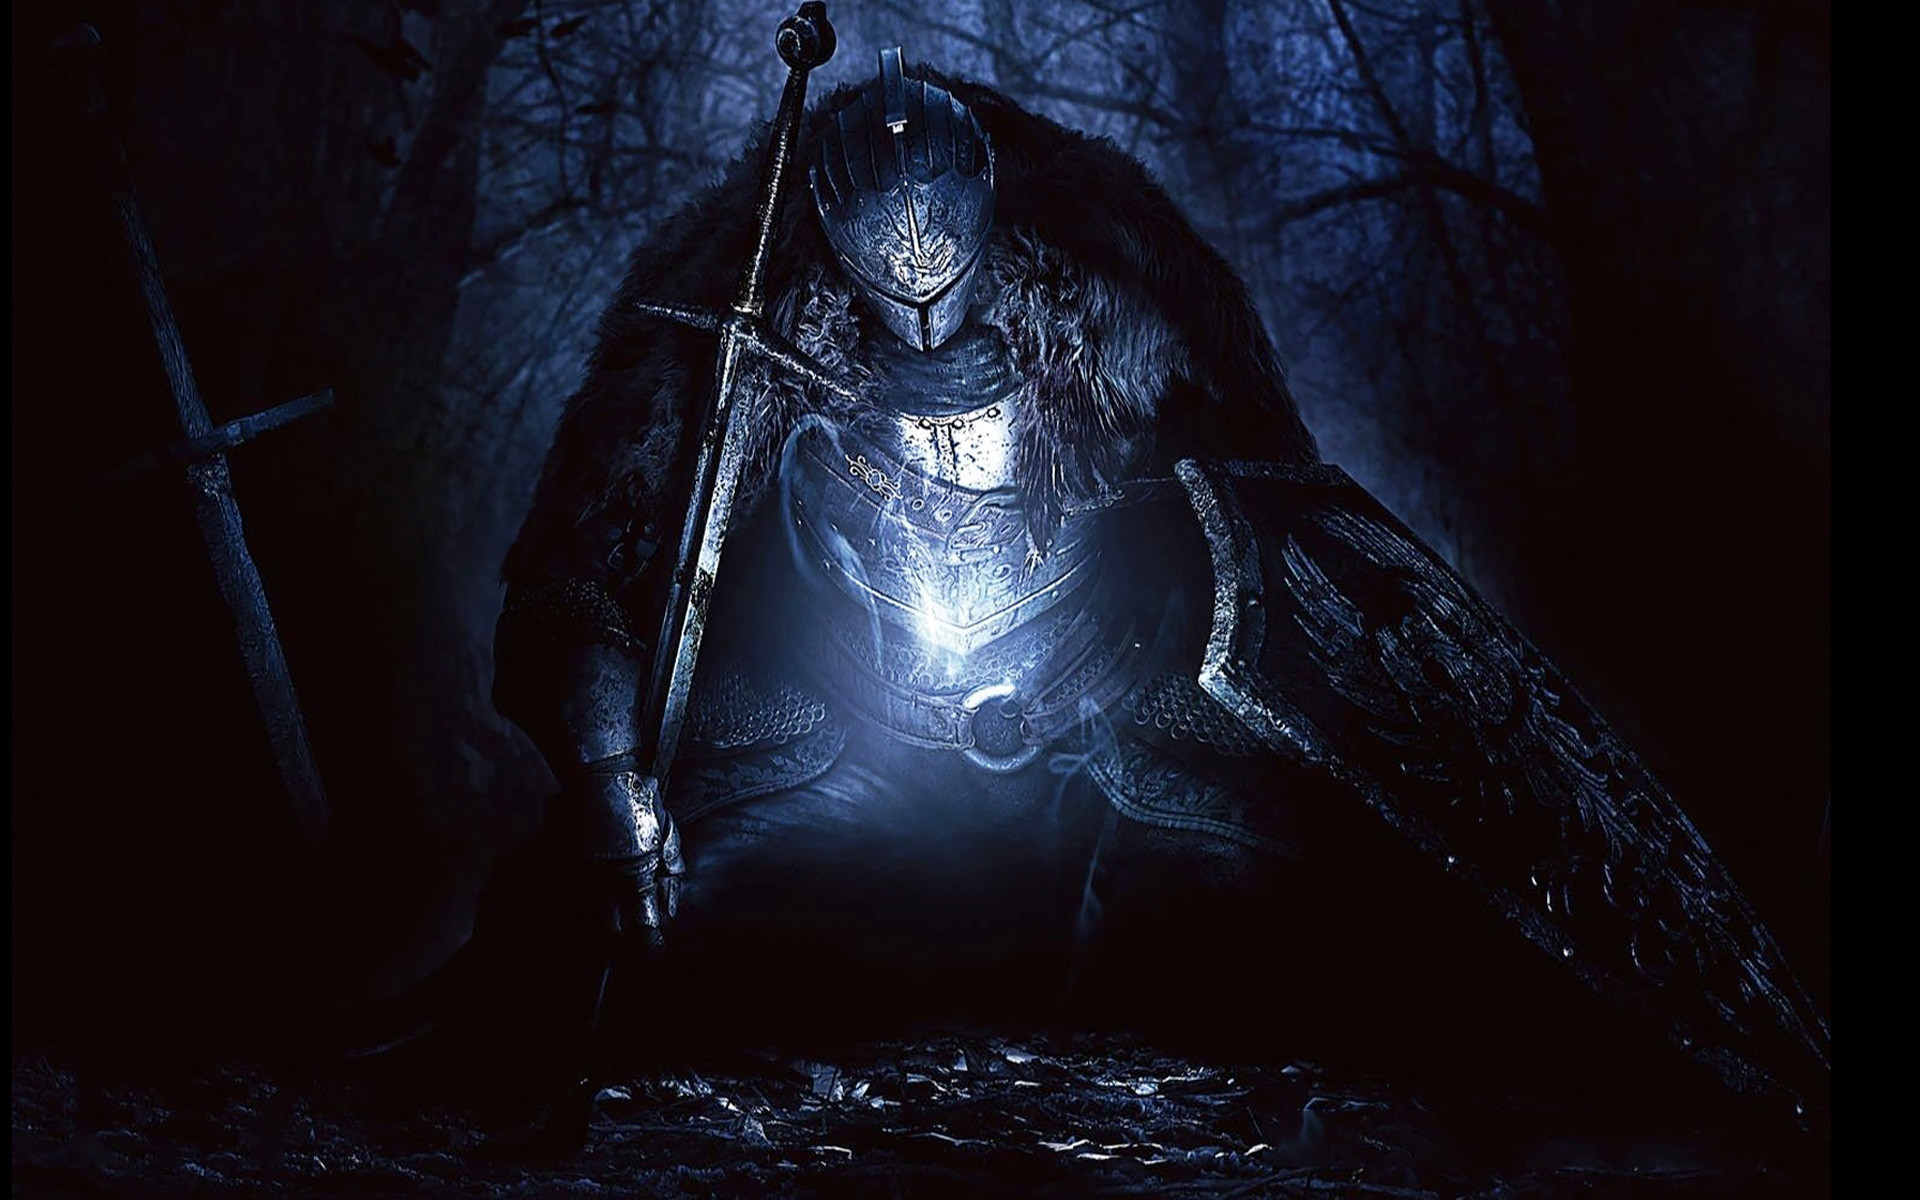 Dark Souls 2 Wallpaper 3 | Theme and Pictures | Pinterest | Dark souls, Dark  souls art and Medieval